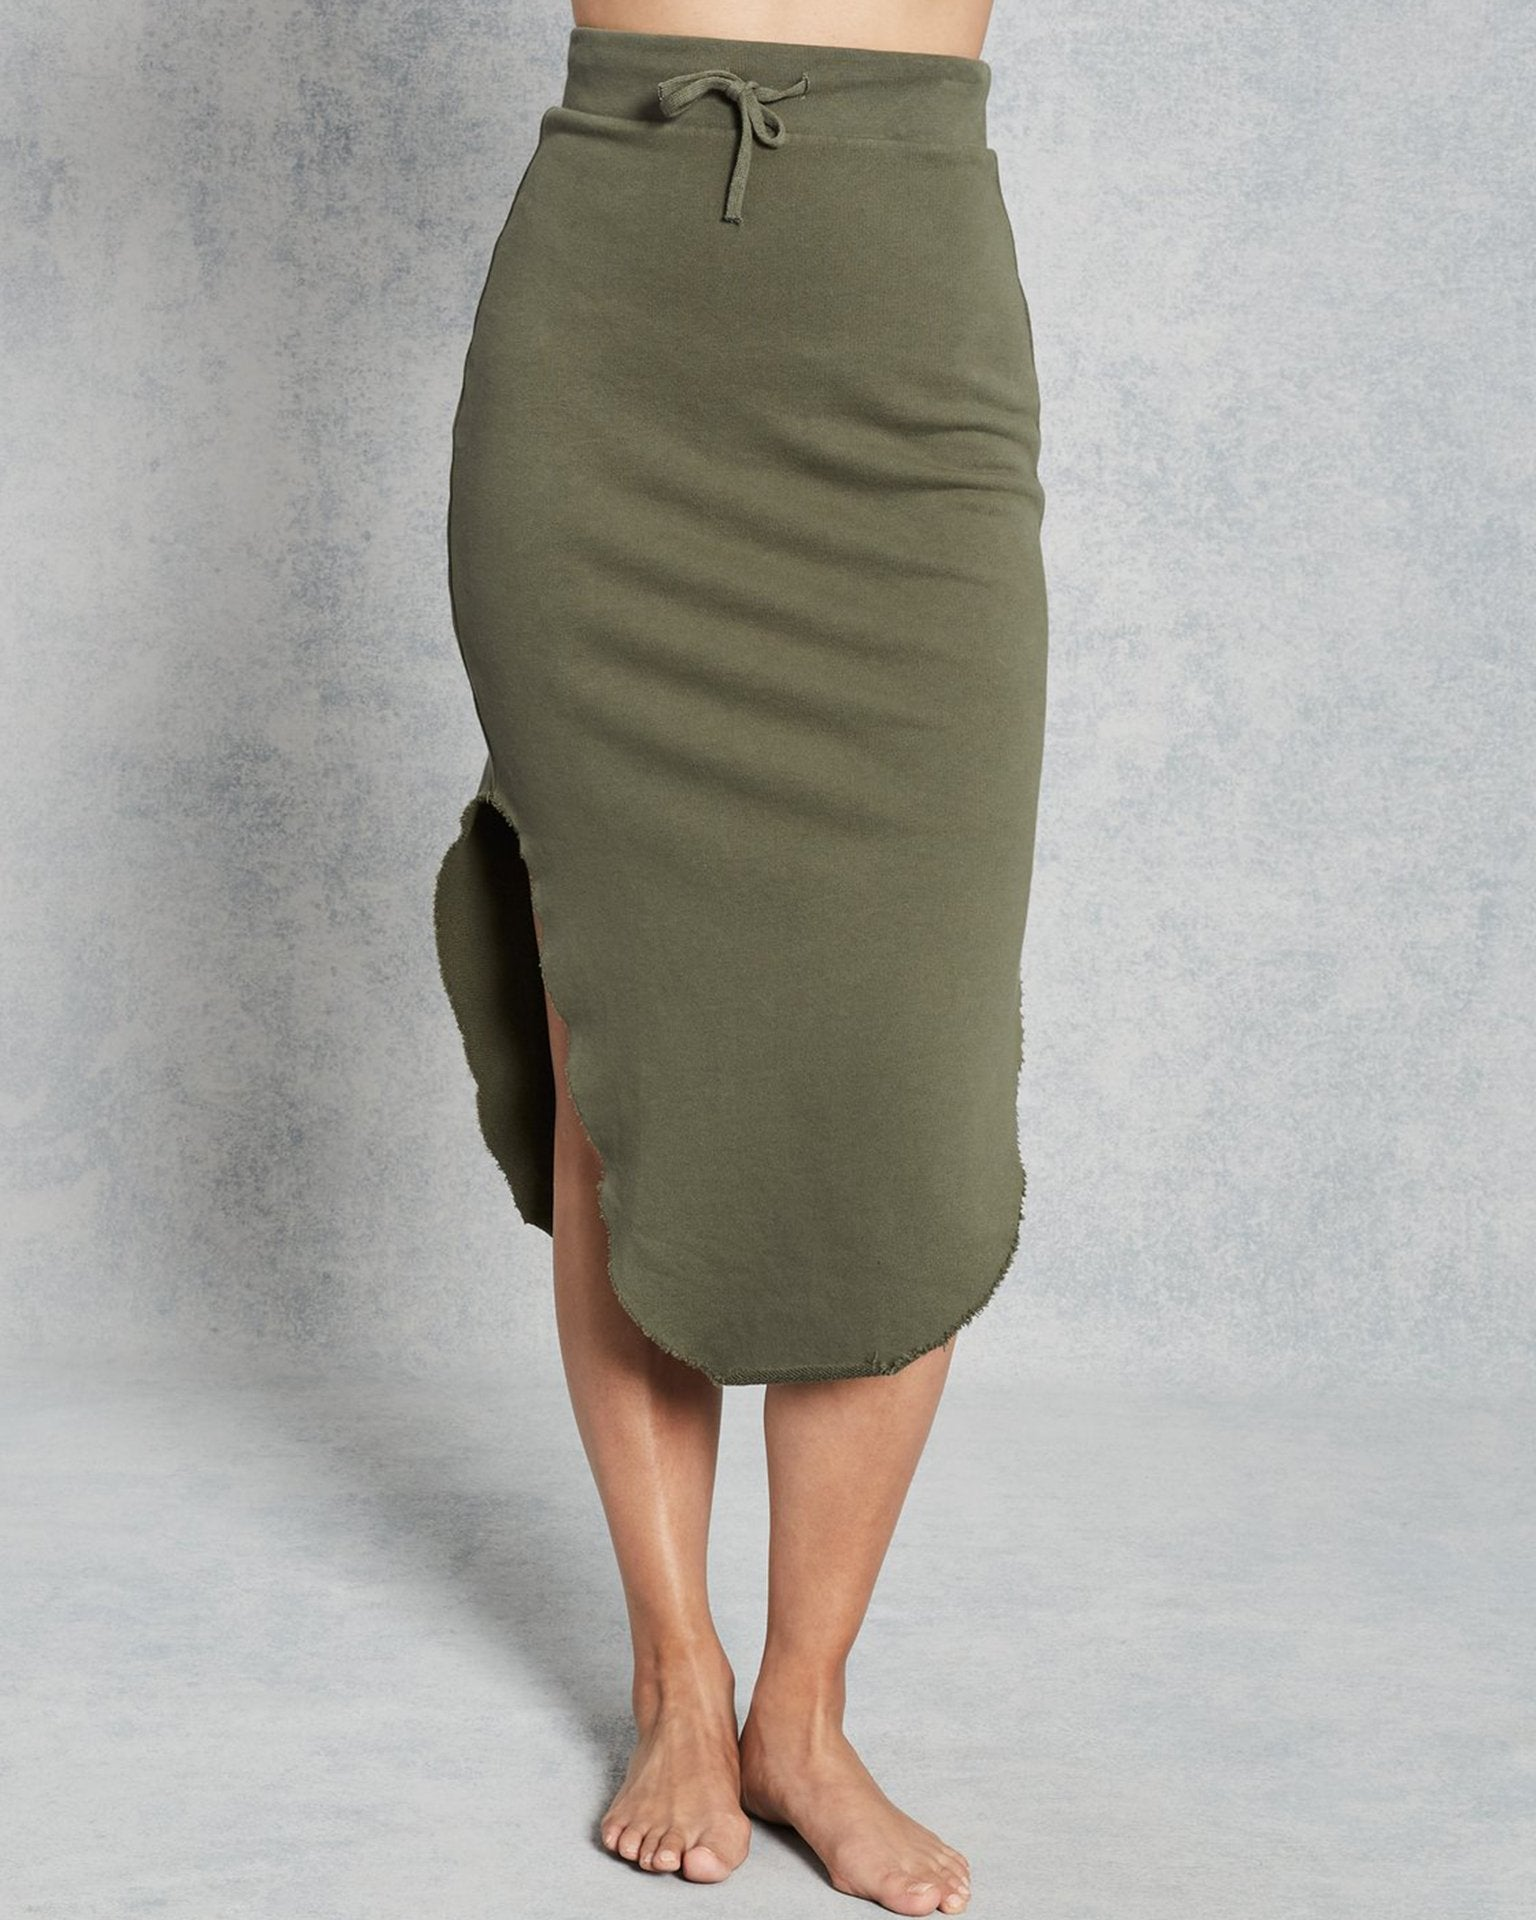 Tee Lab Clothing British Army / XS Long Fleece Skirt in British Army